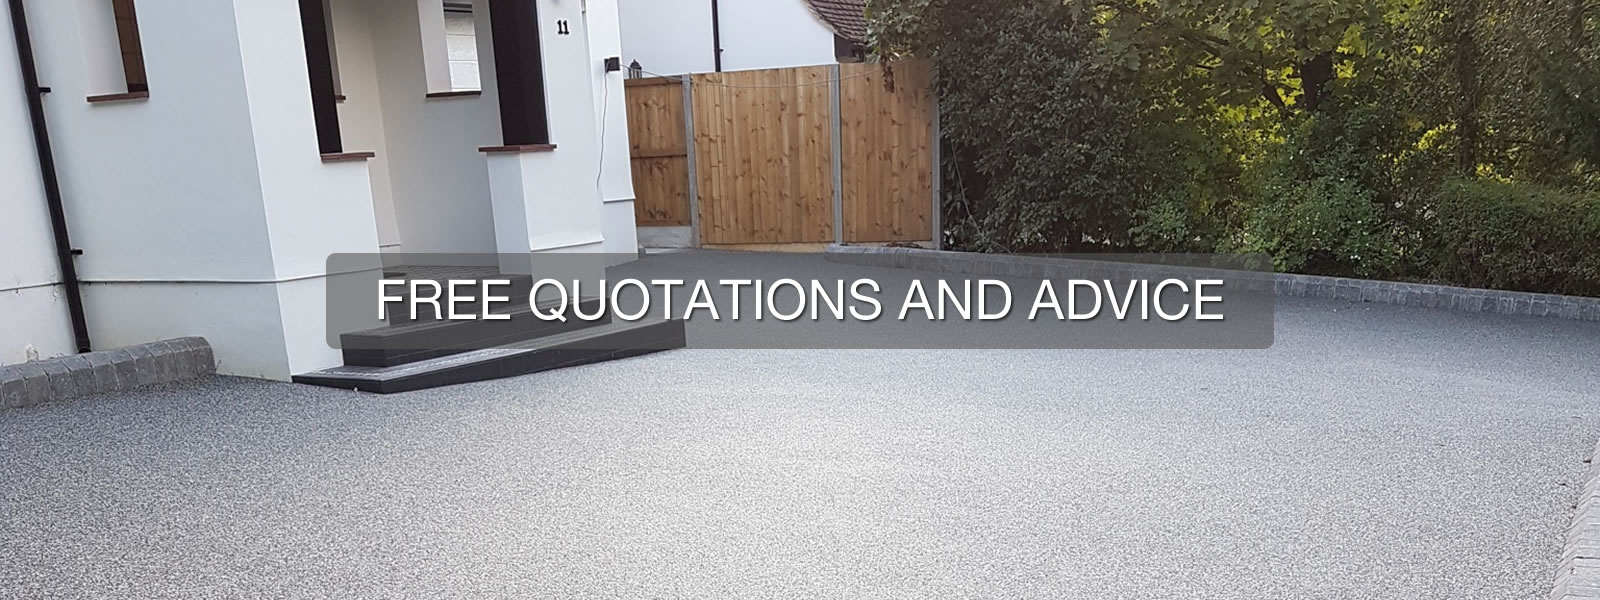 Glenco Driveways - Free quotations and advice